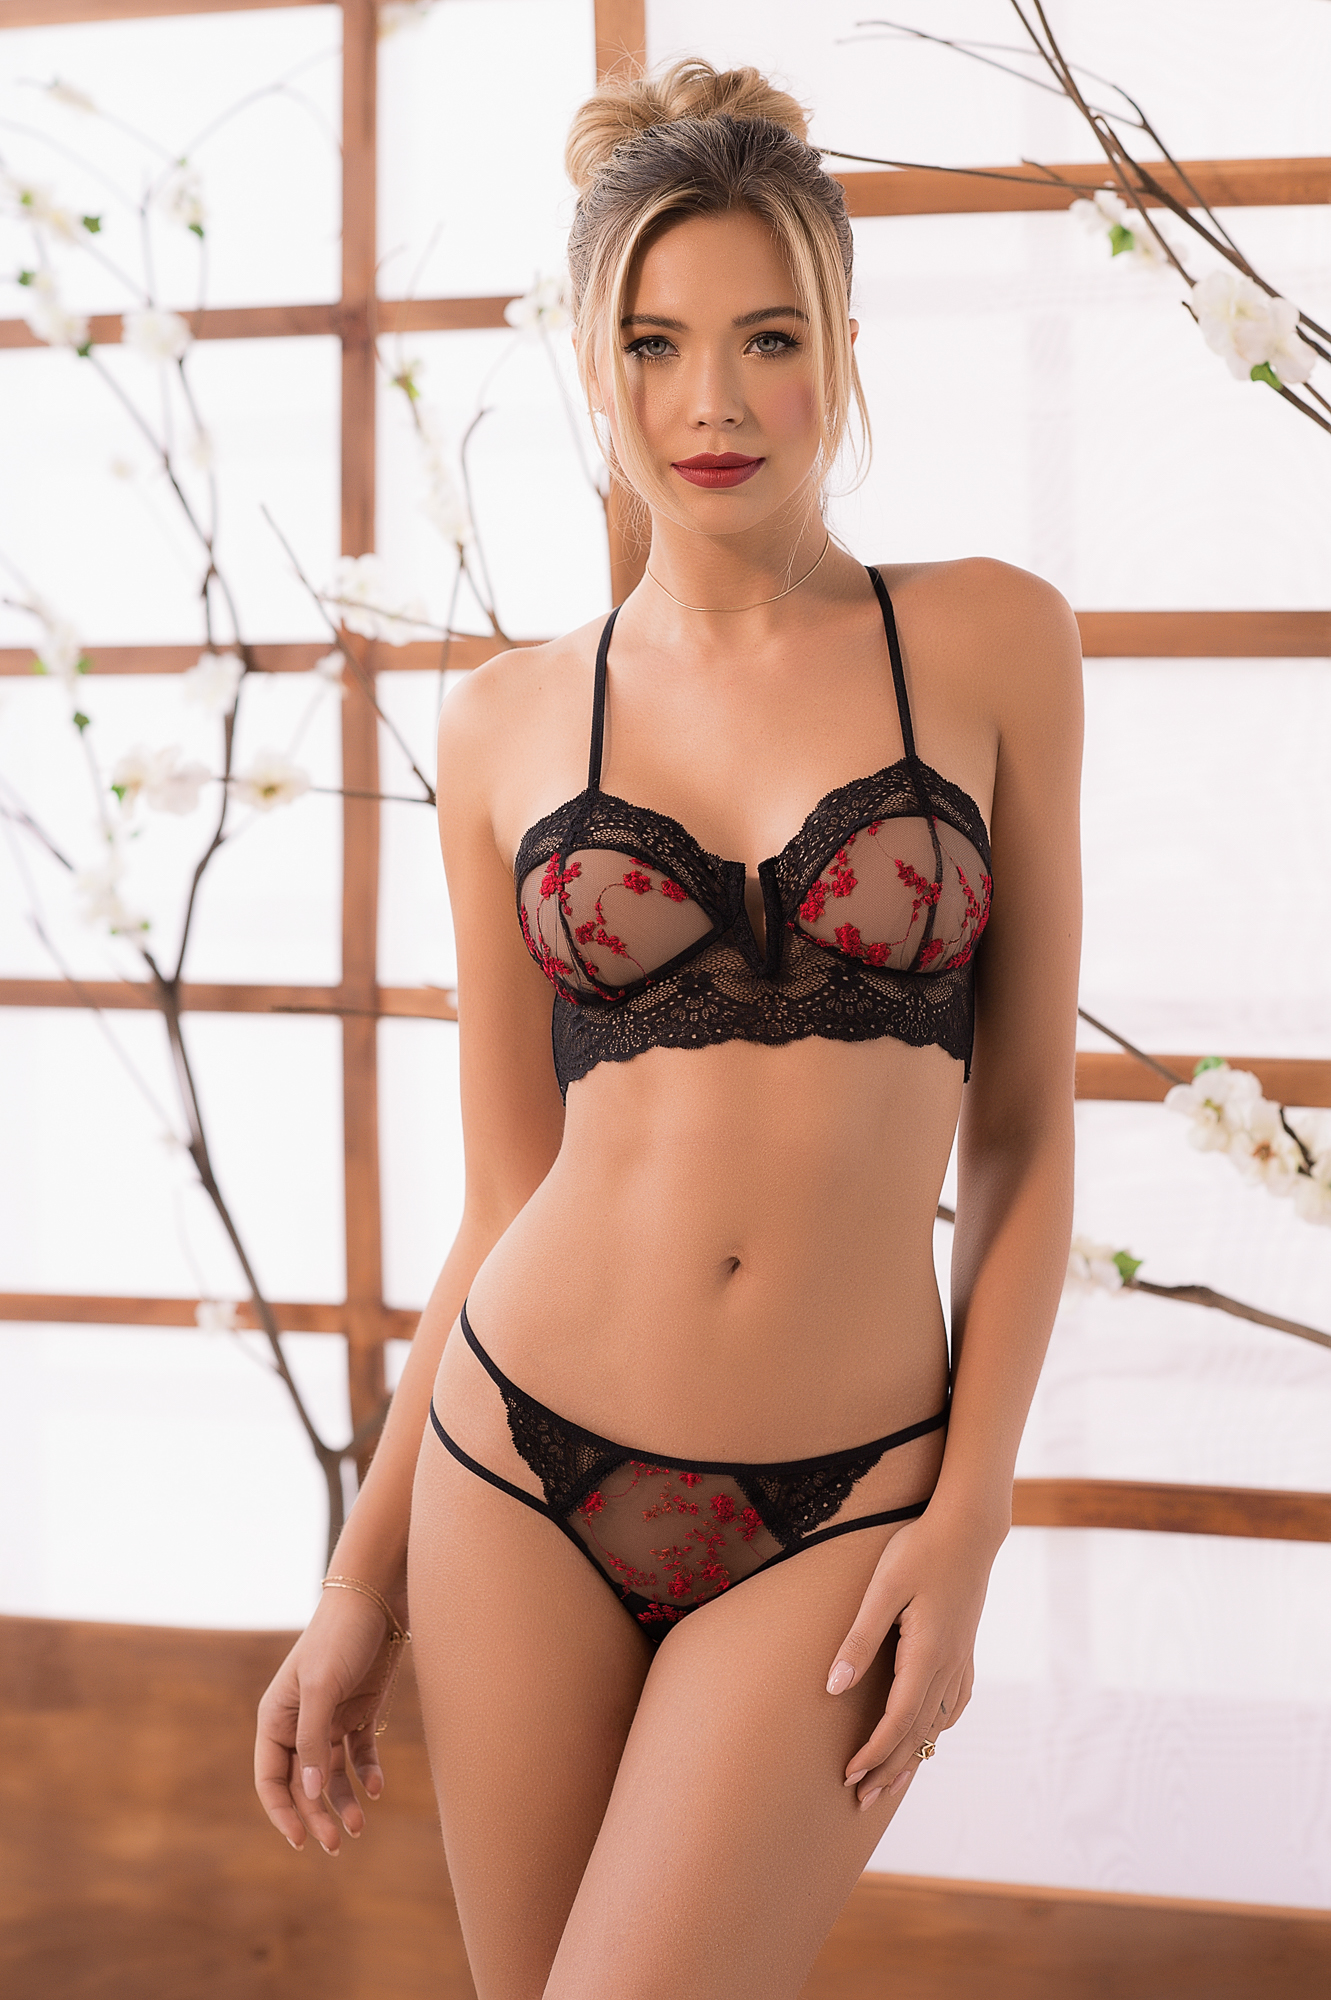 cool lingerie model in sexy pose